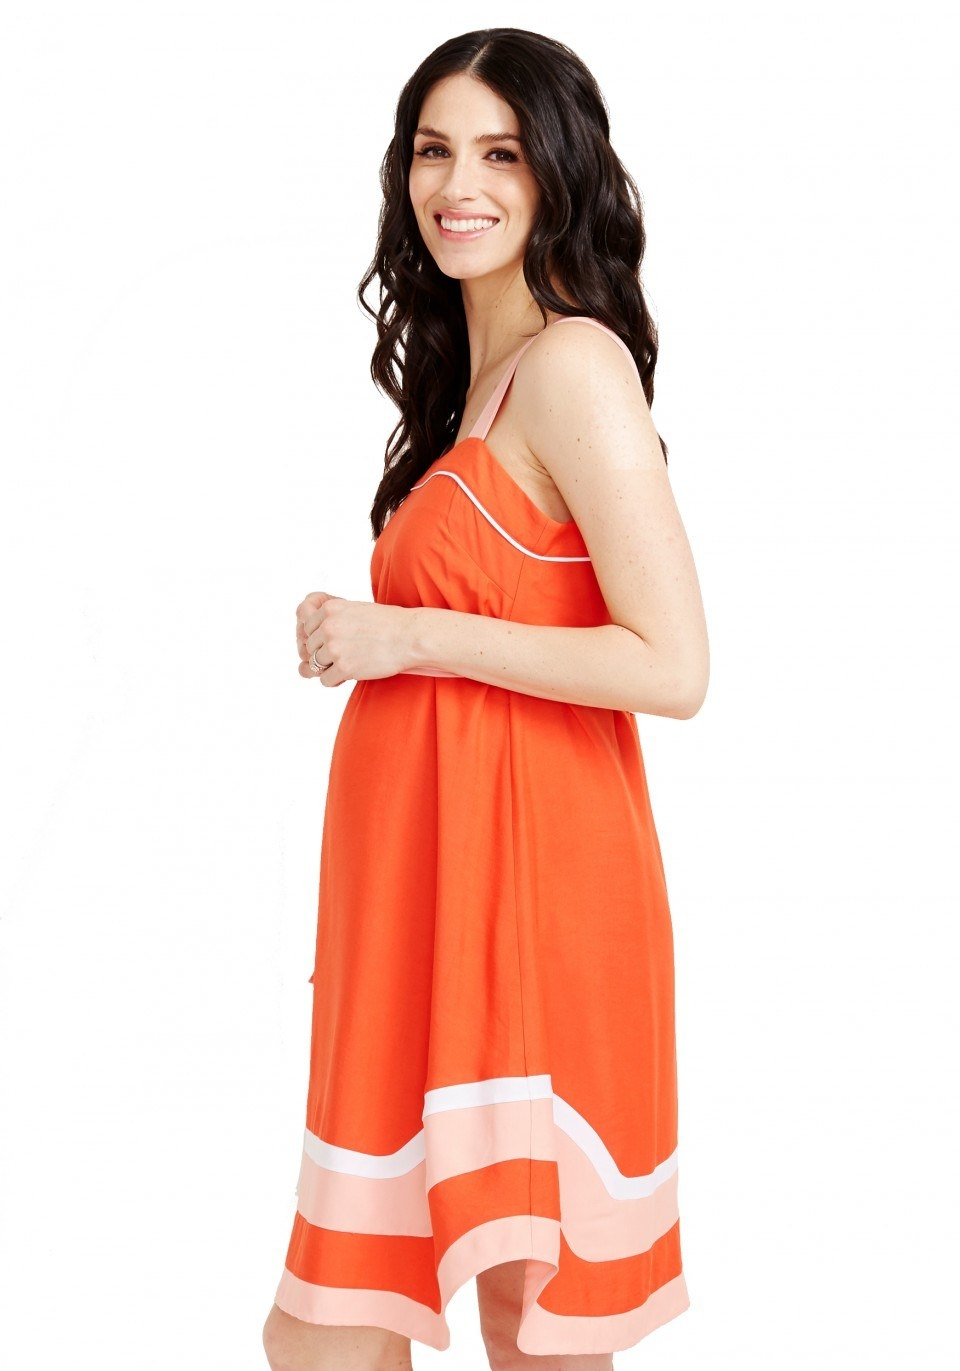 46f3d52419 32 Of The Best Places To Buy Maternity Clothing Online